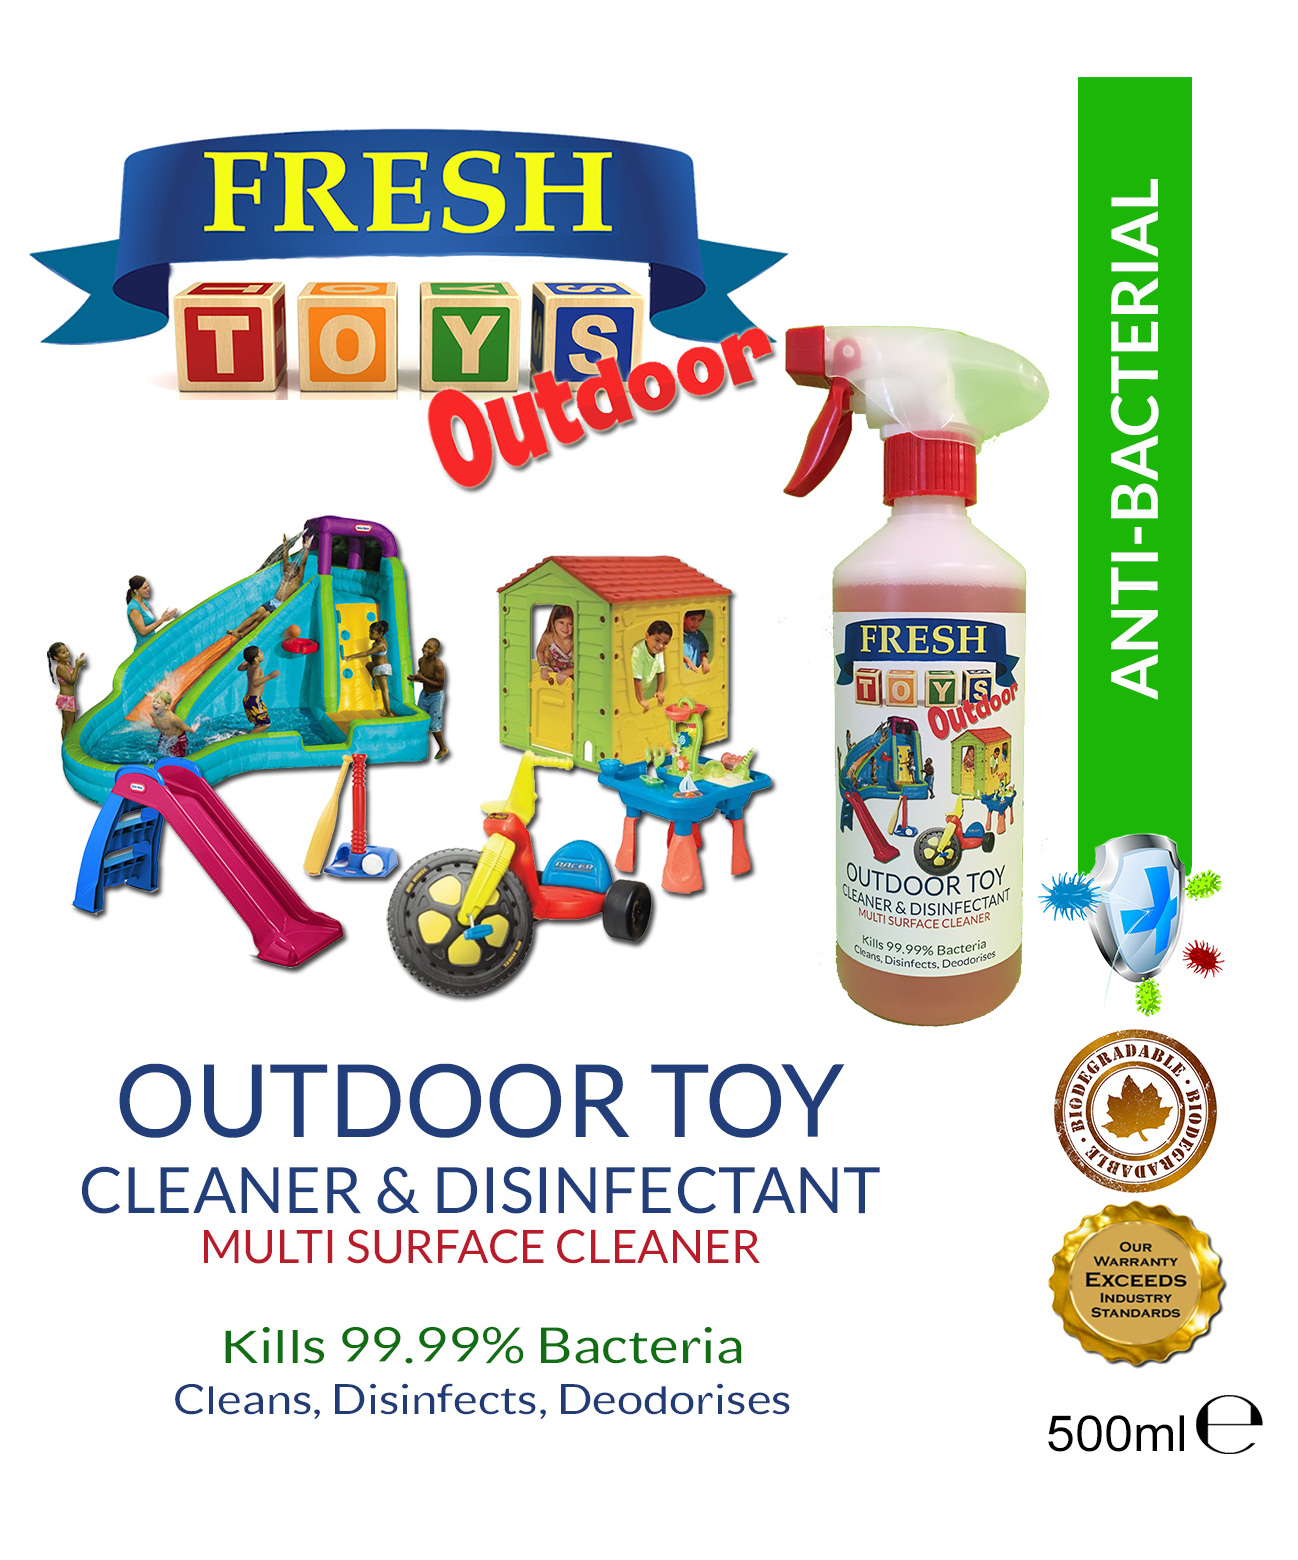 products-TC-TOY-CLEANER-OUTDOOR-500ML-advert